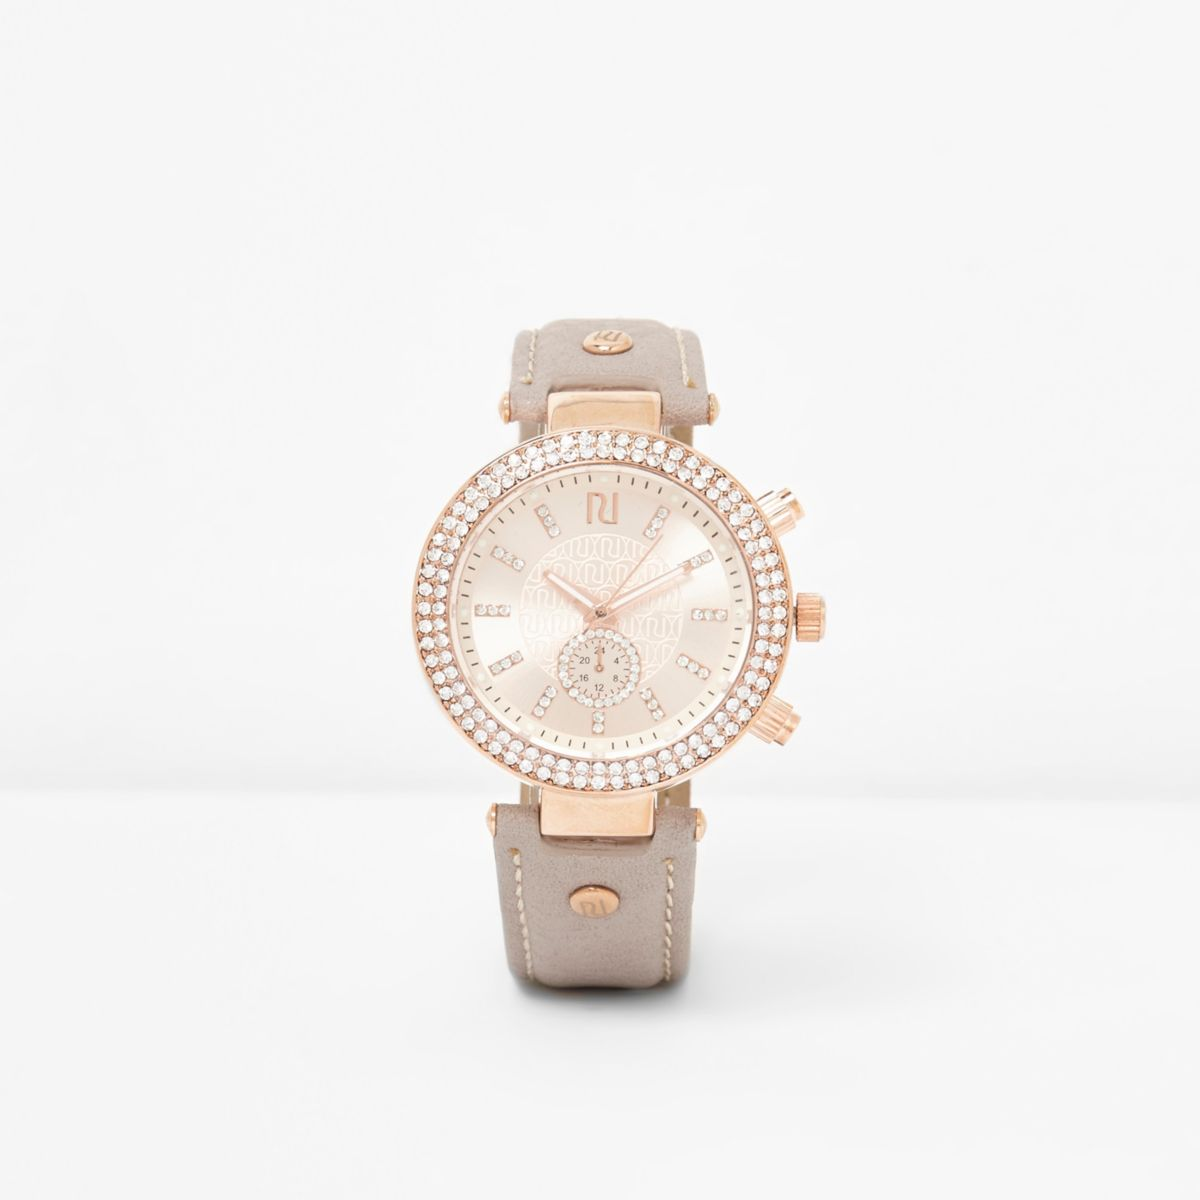 Light grey and rose gold tone rhinestone watch